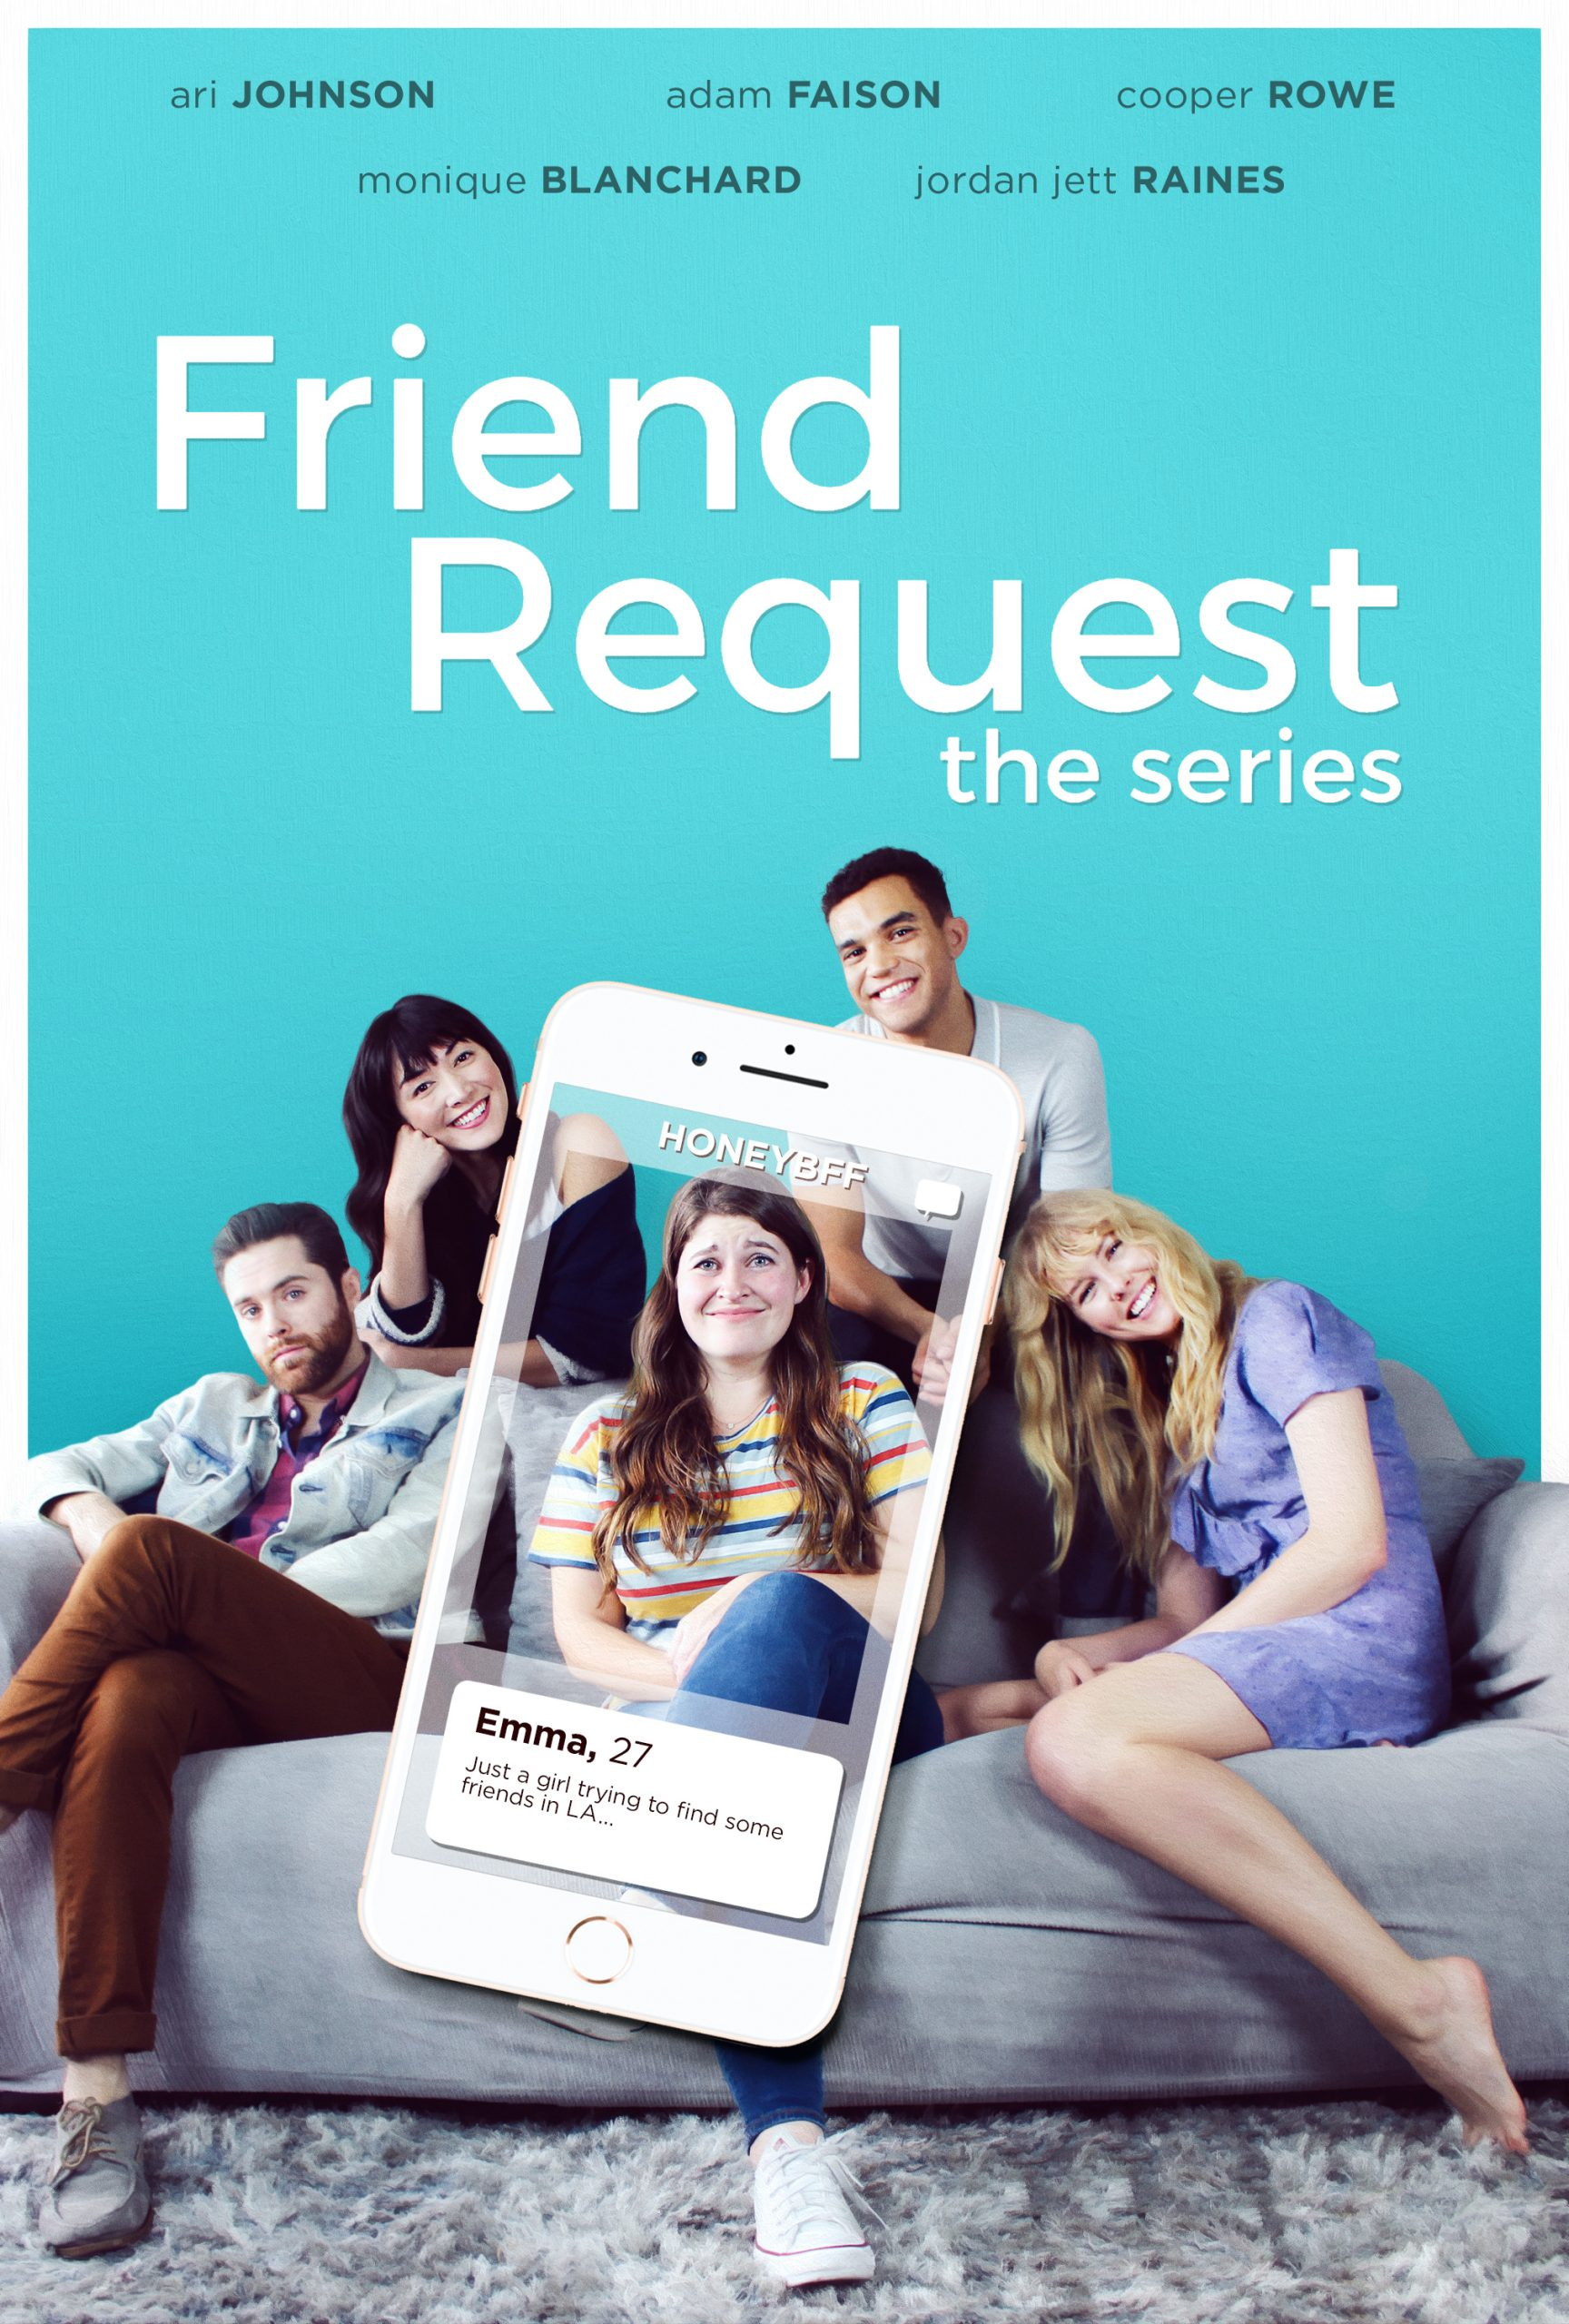 Friend Request the Series Directed by Ari Johnson